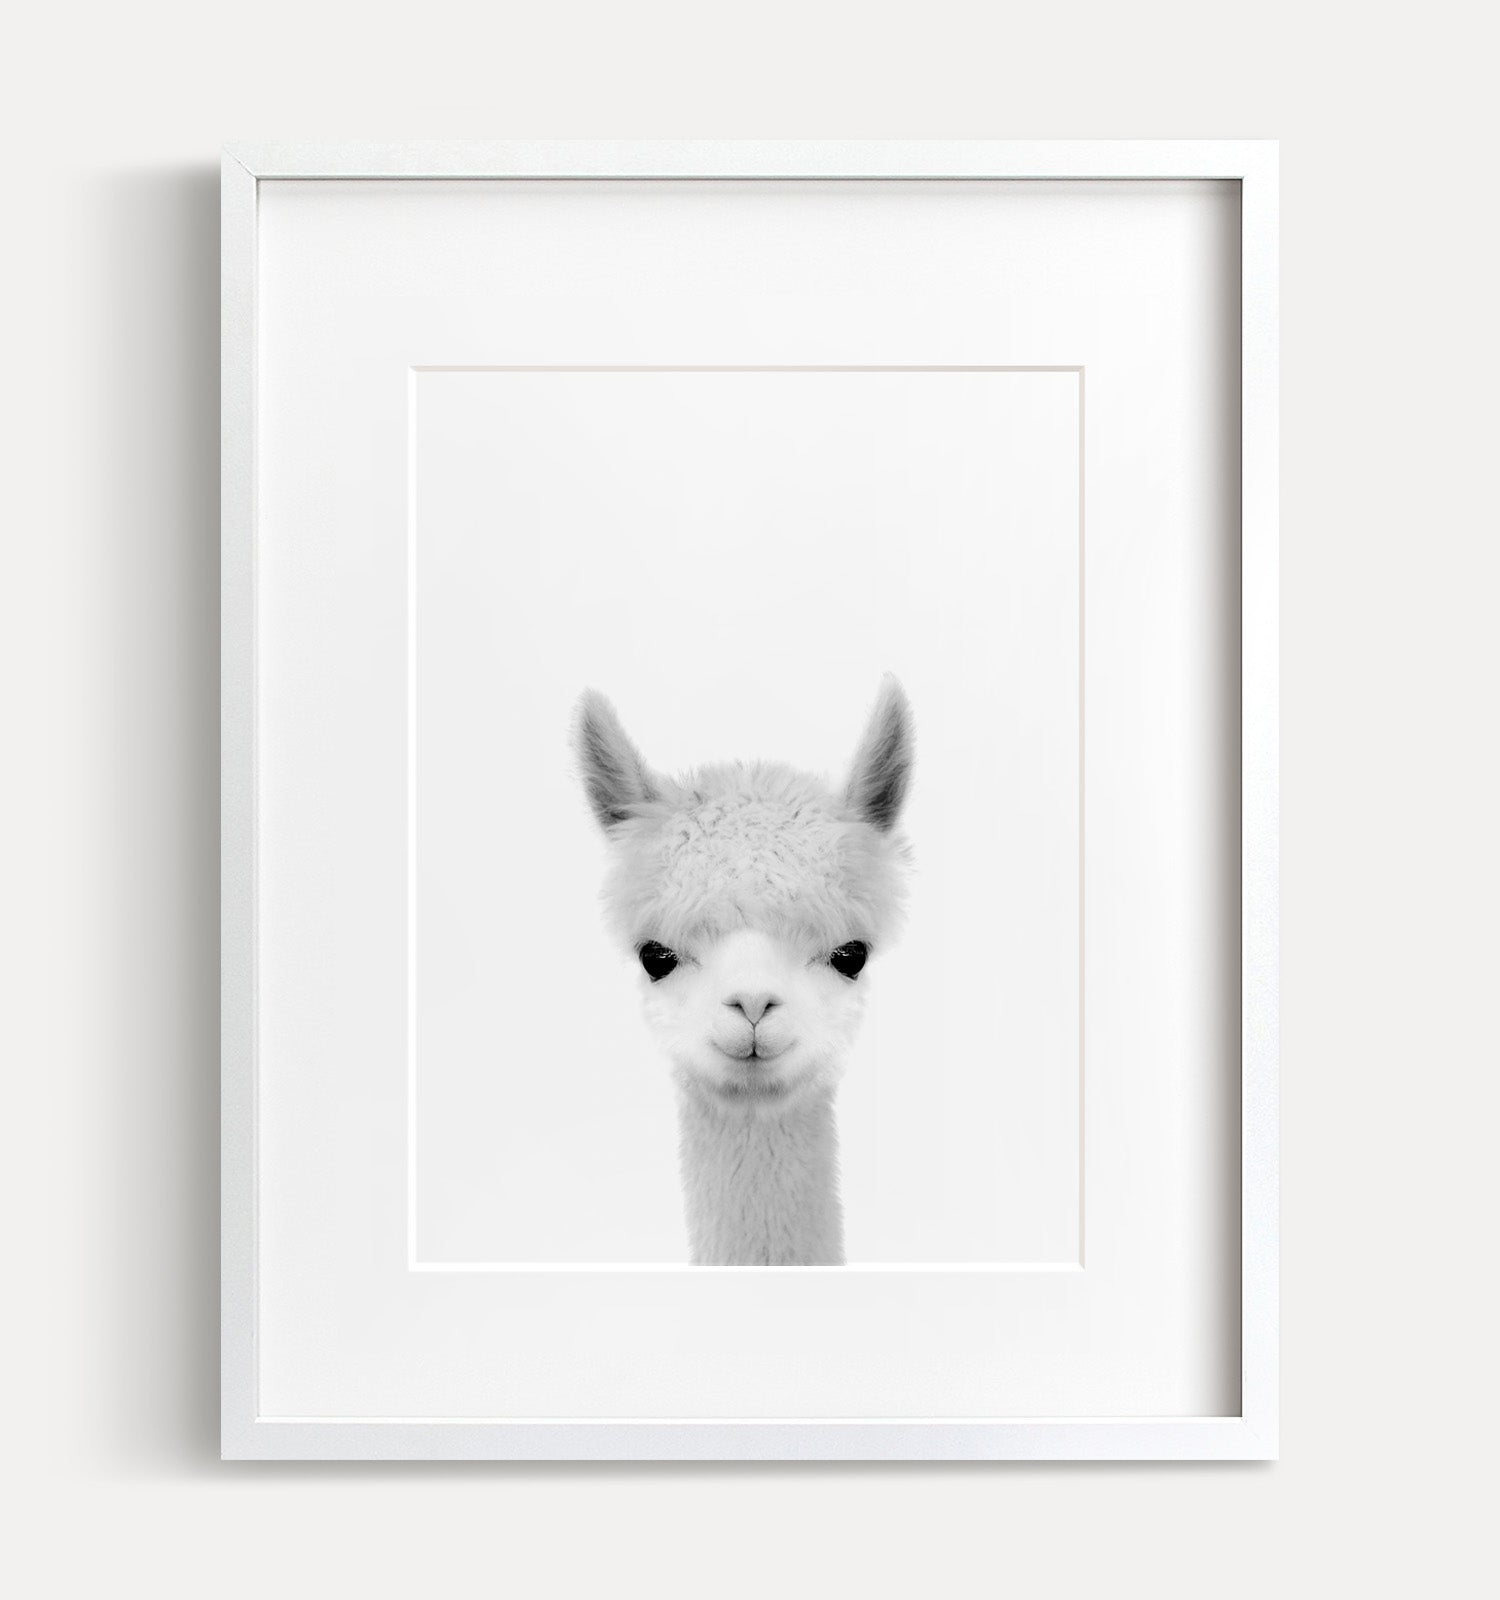 Baby Alpaca Print - Black and White - The Crown Prints